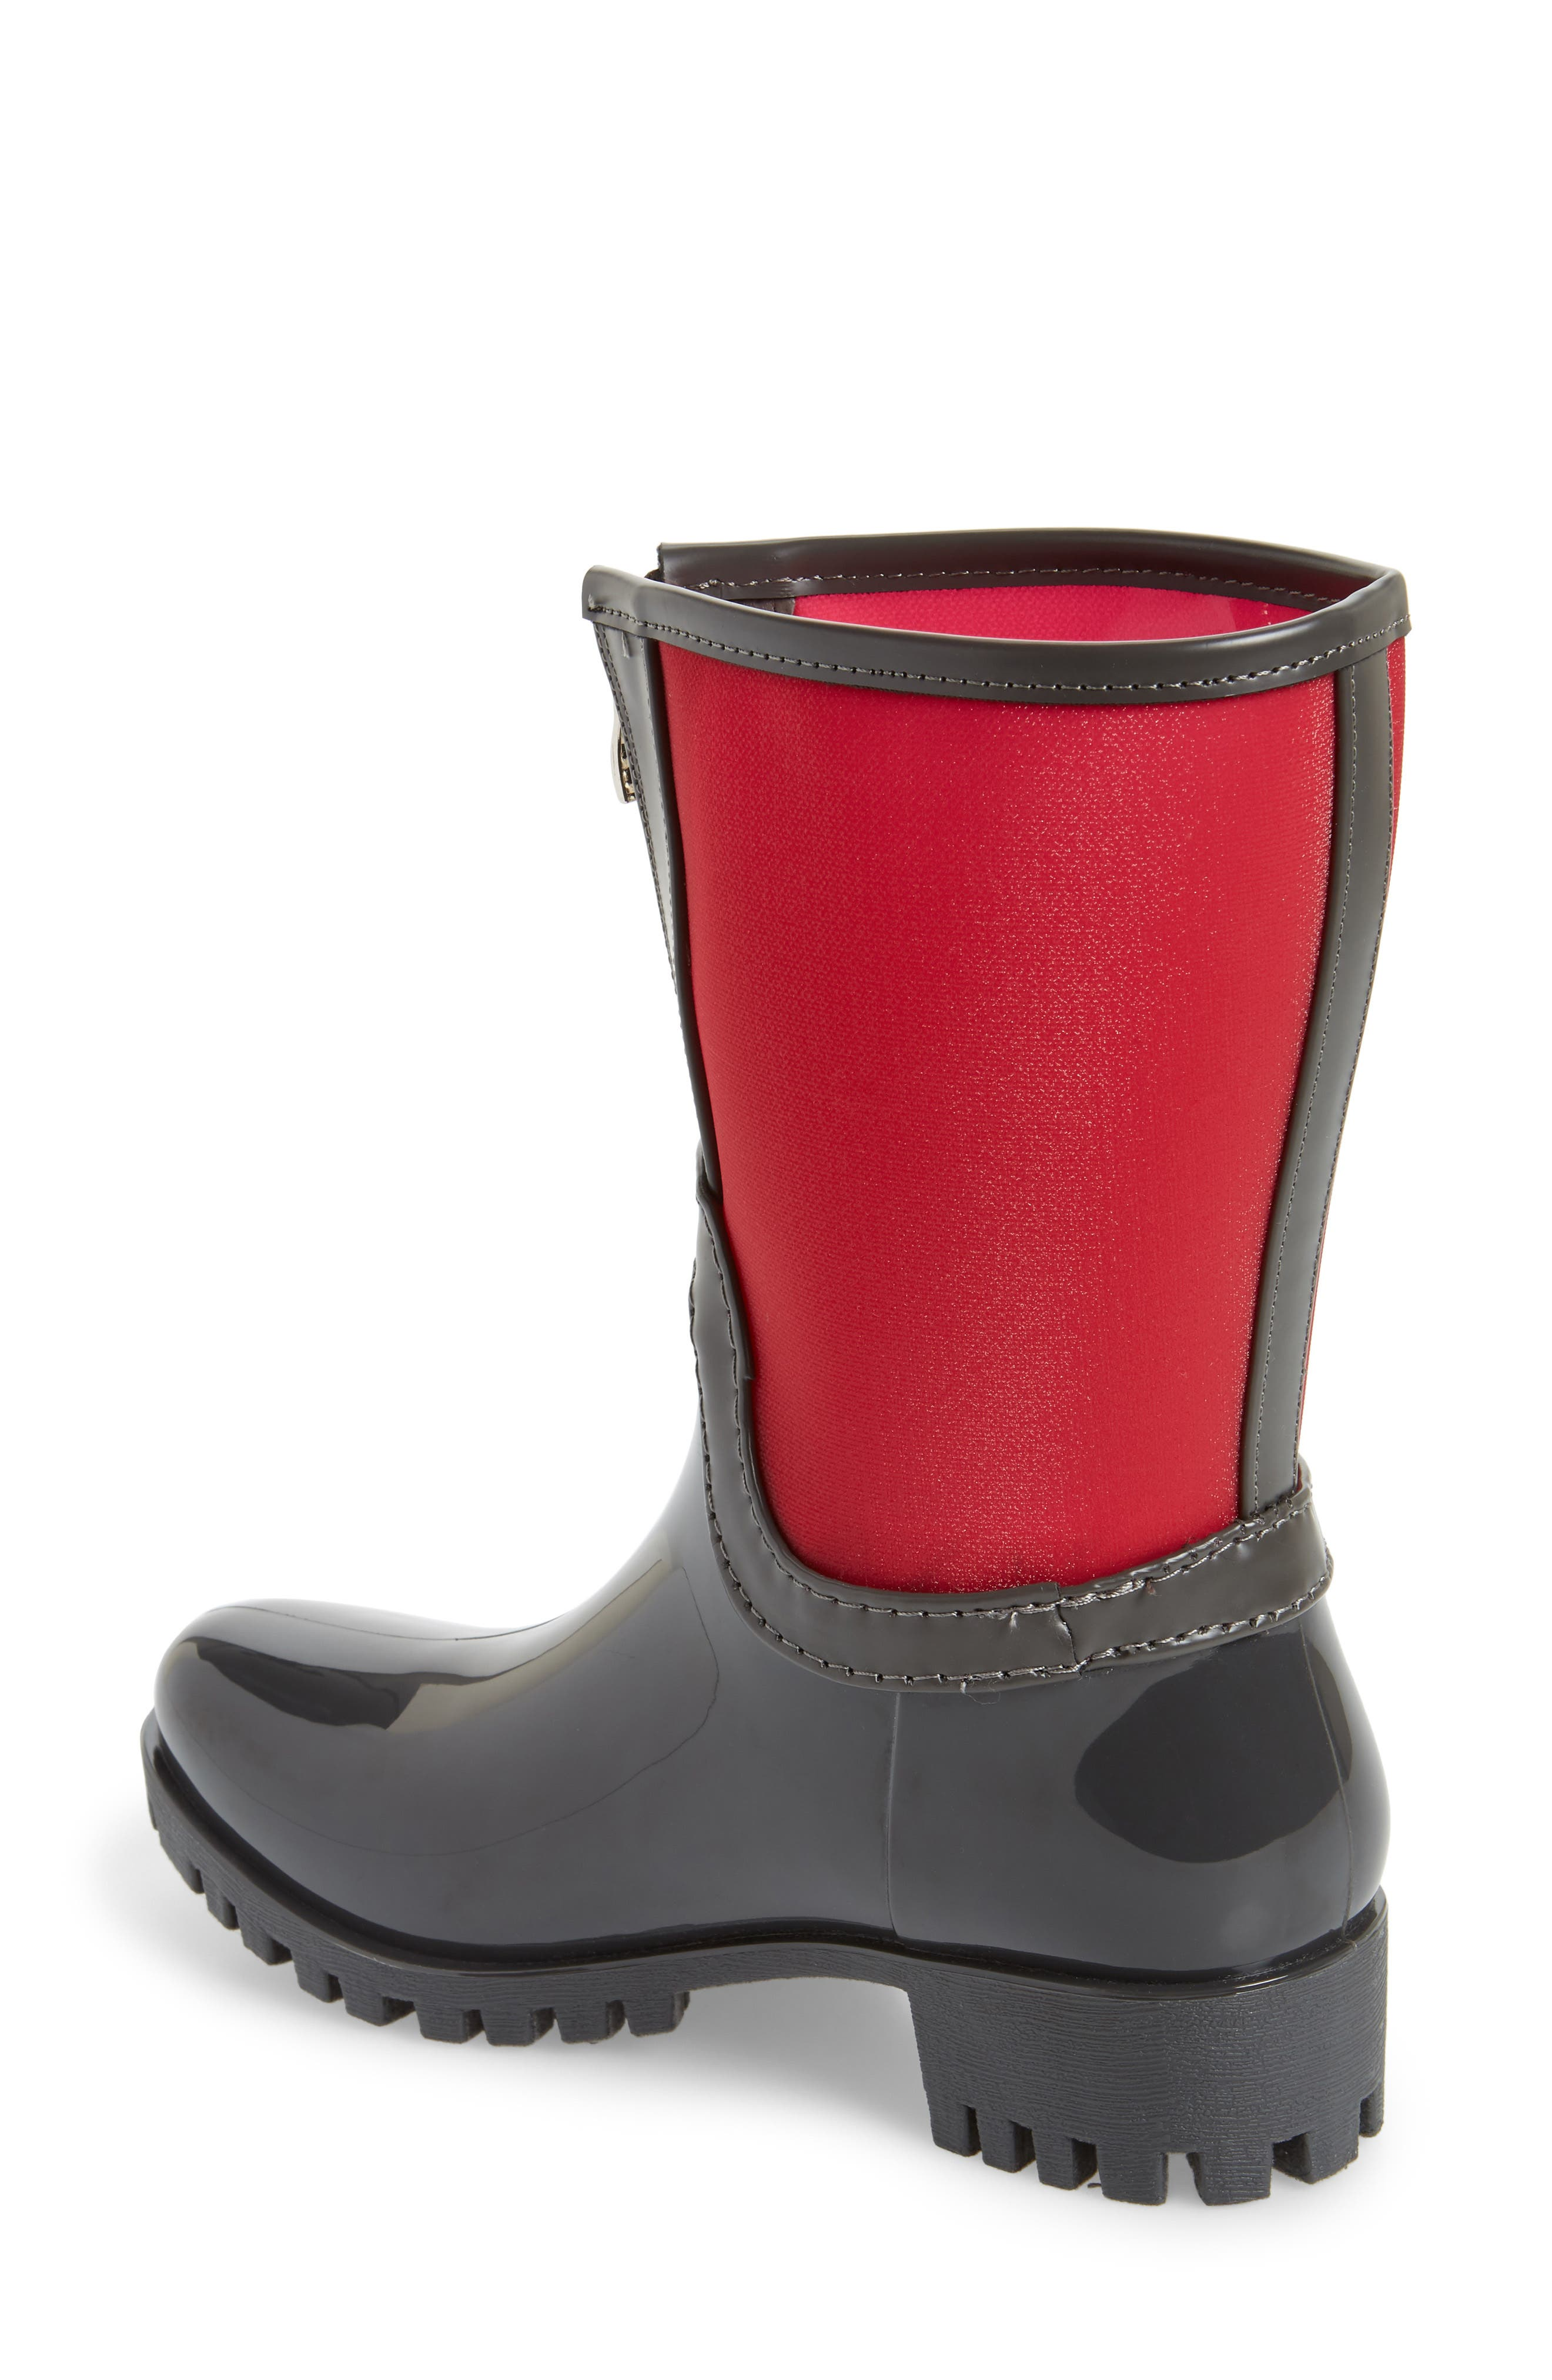 Dryden Sheer Waterproof Boot,                             Alternate thumbnail 2, color,                             Berry Fabric